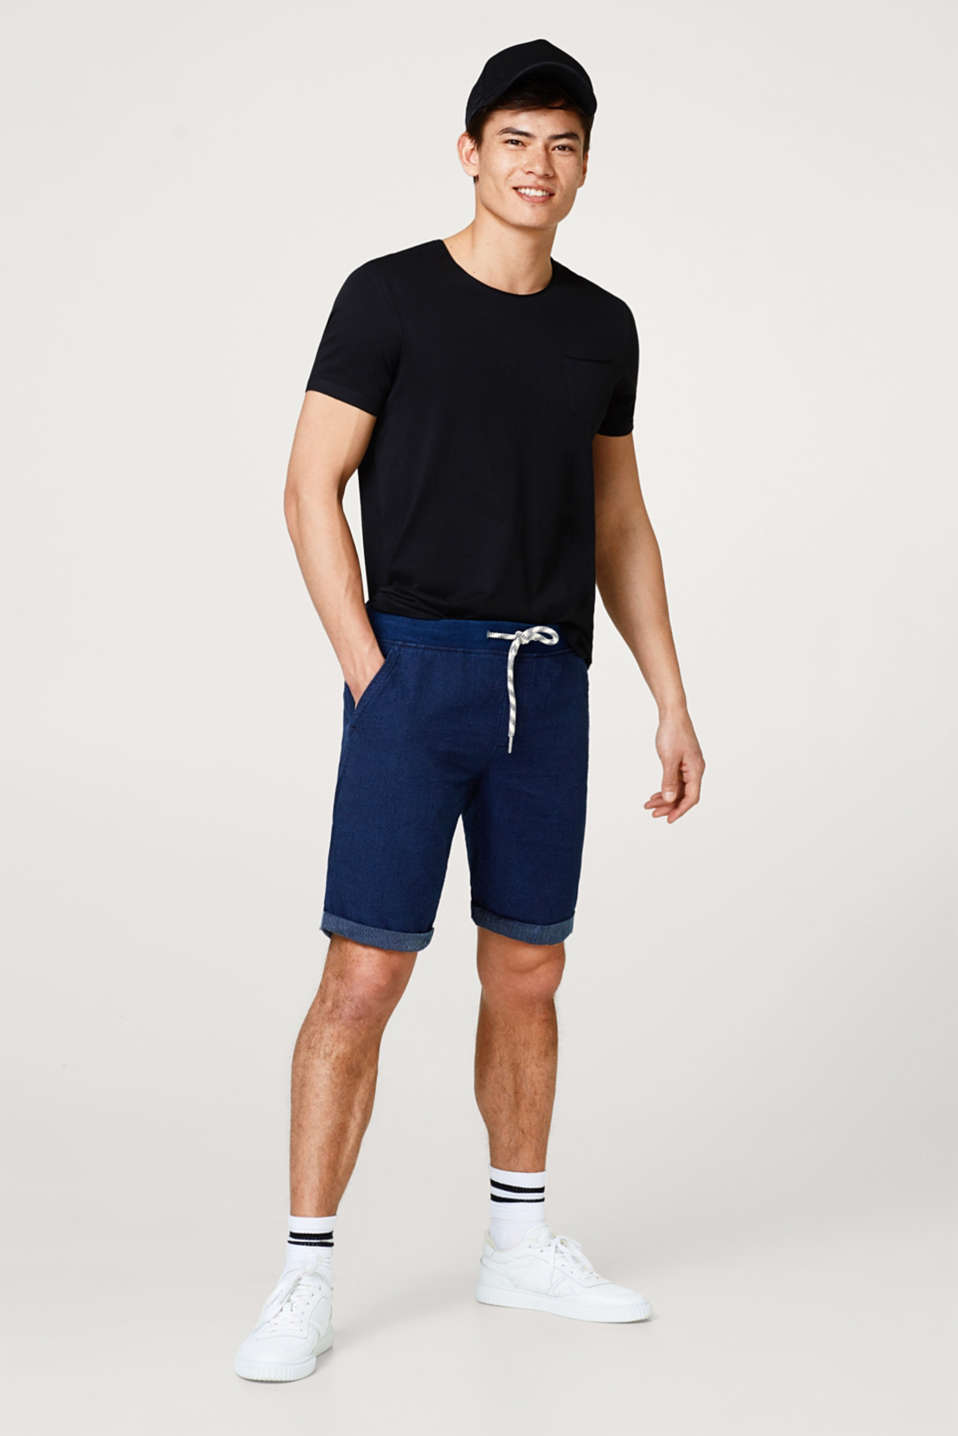 Jogging shorts with a fine woven structure, made of cotton